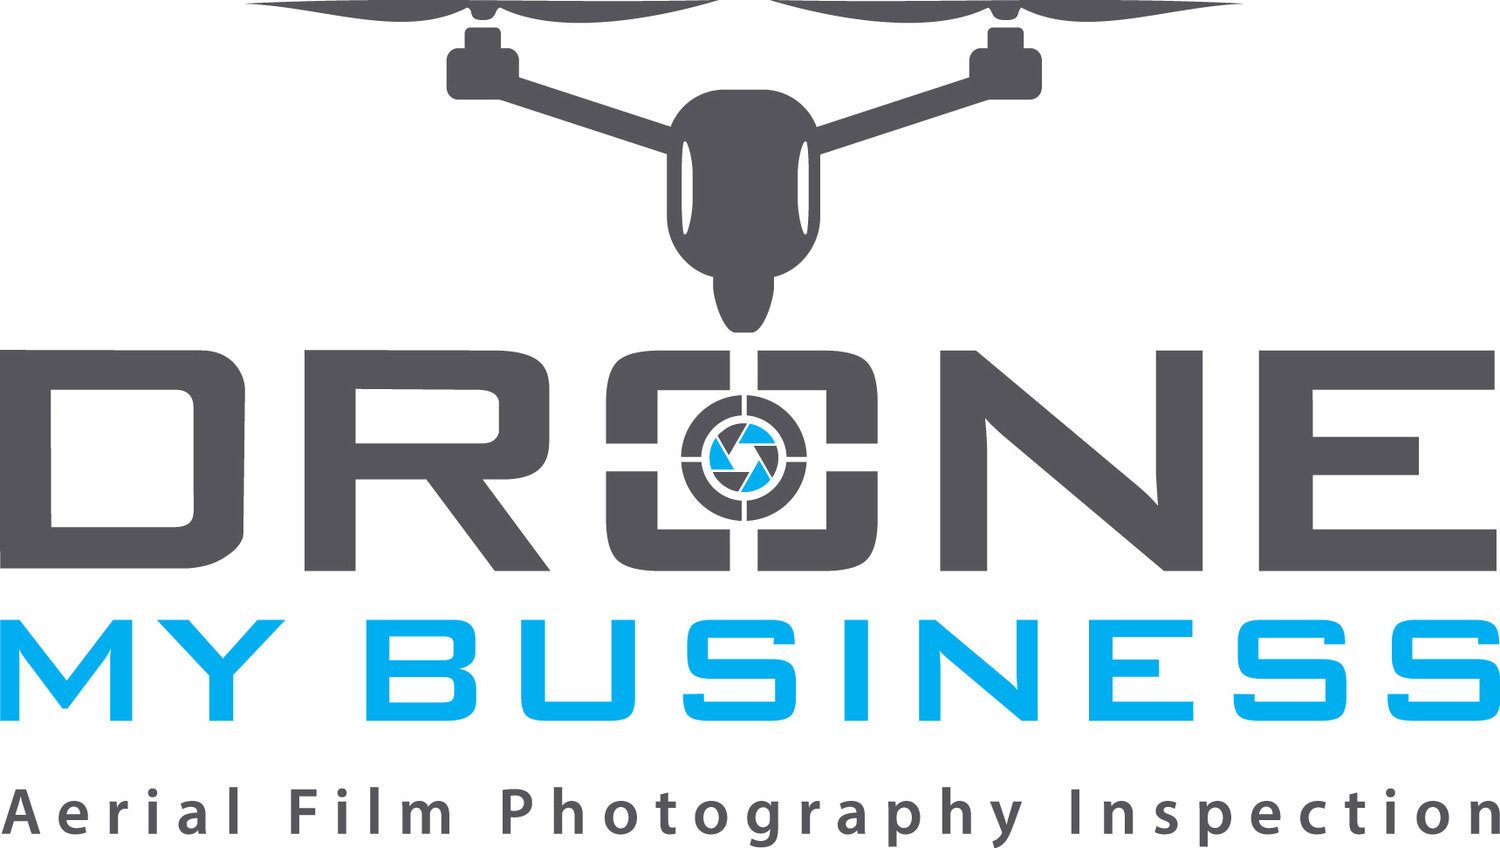 Drone My Business Ltd Aerial filming video photography, building & industrial roof survey inspection services